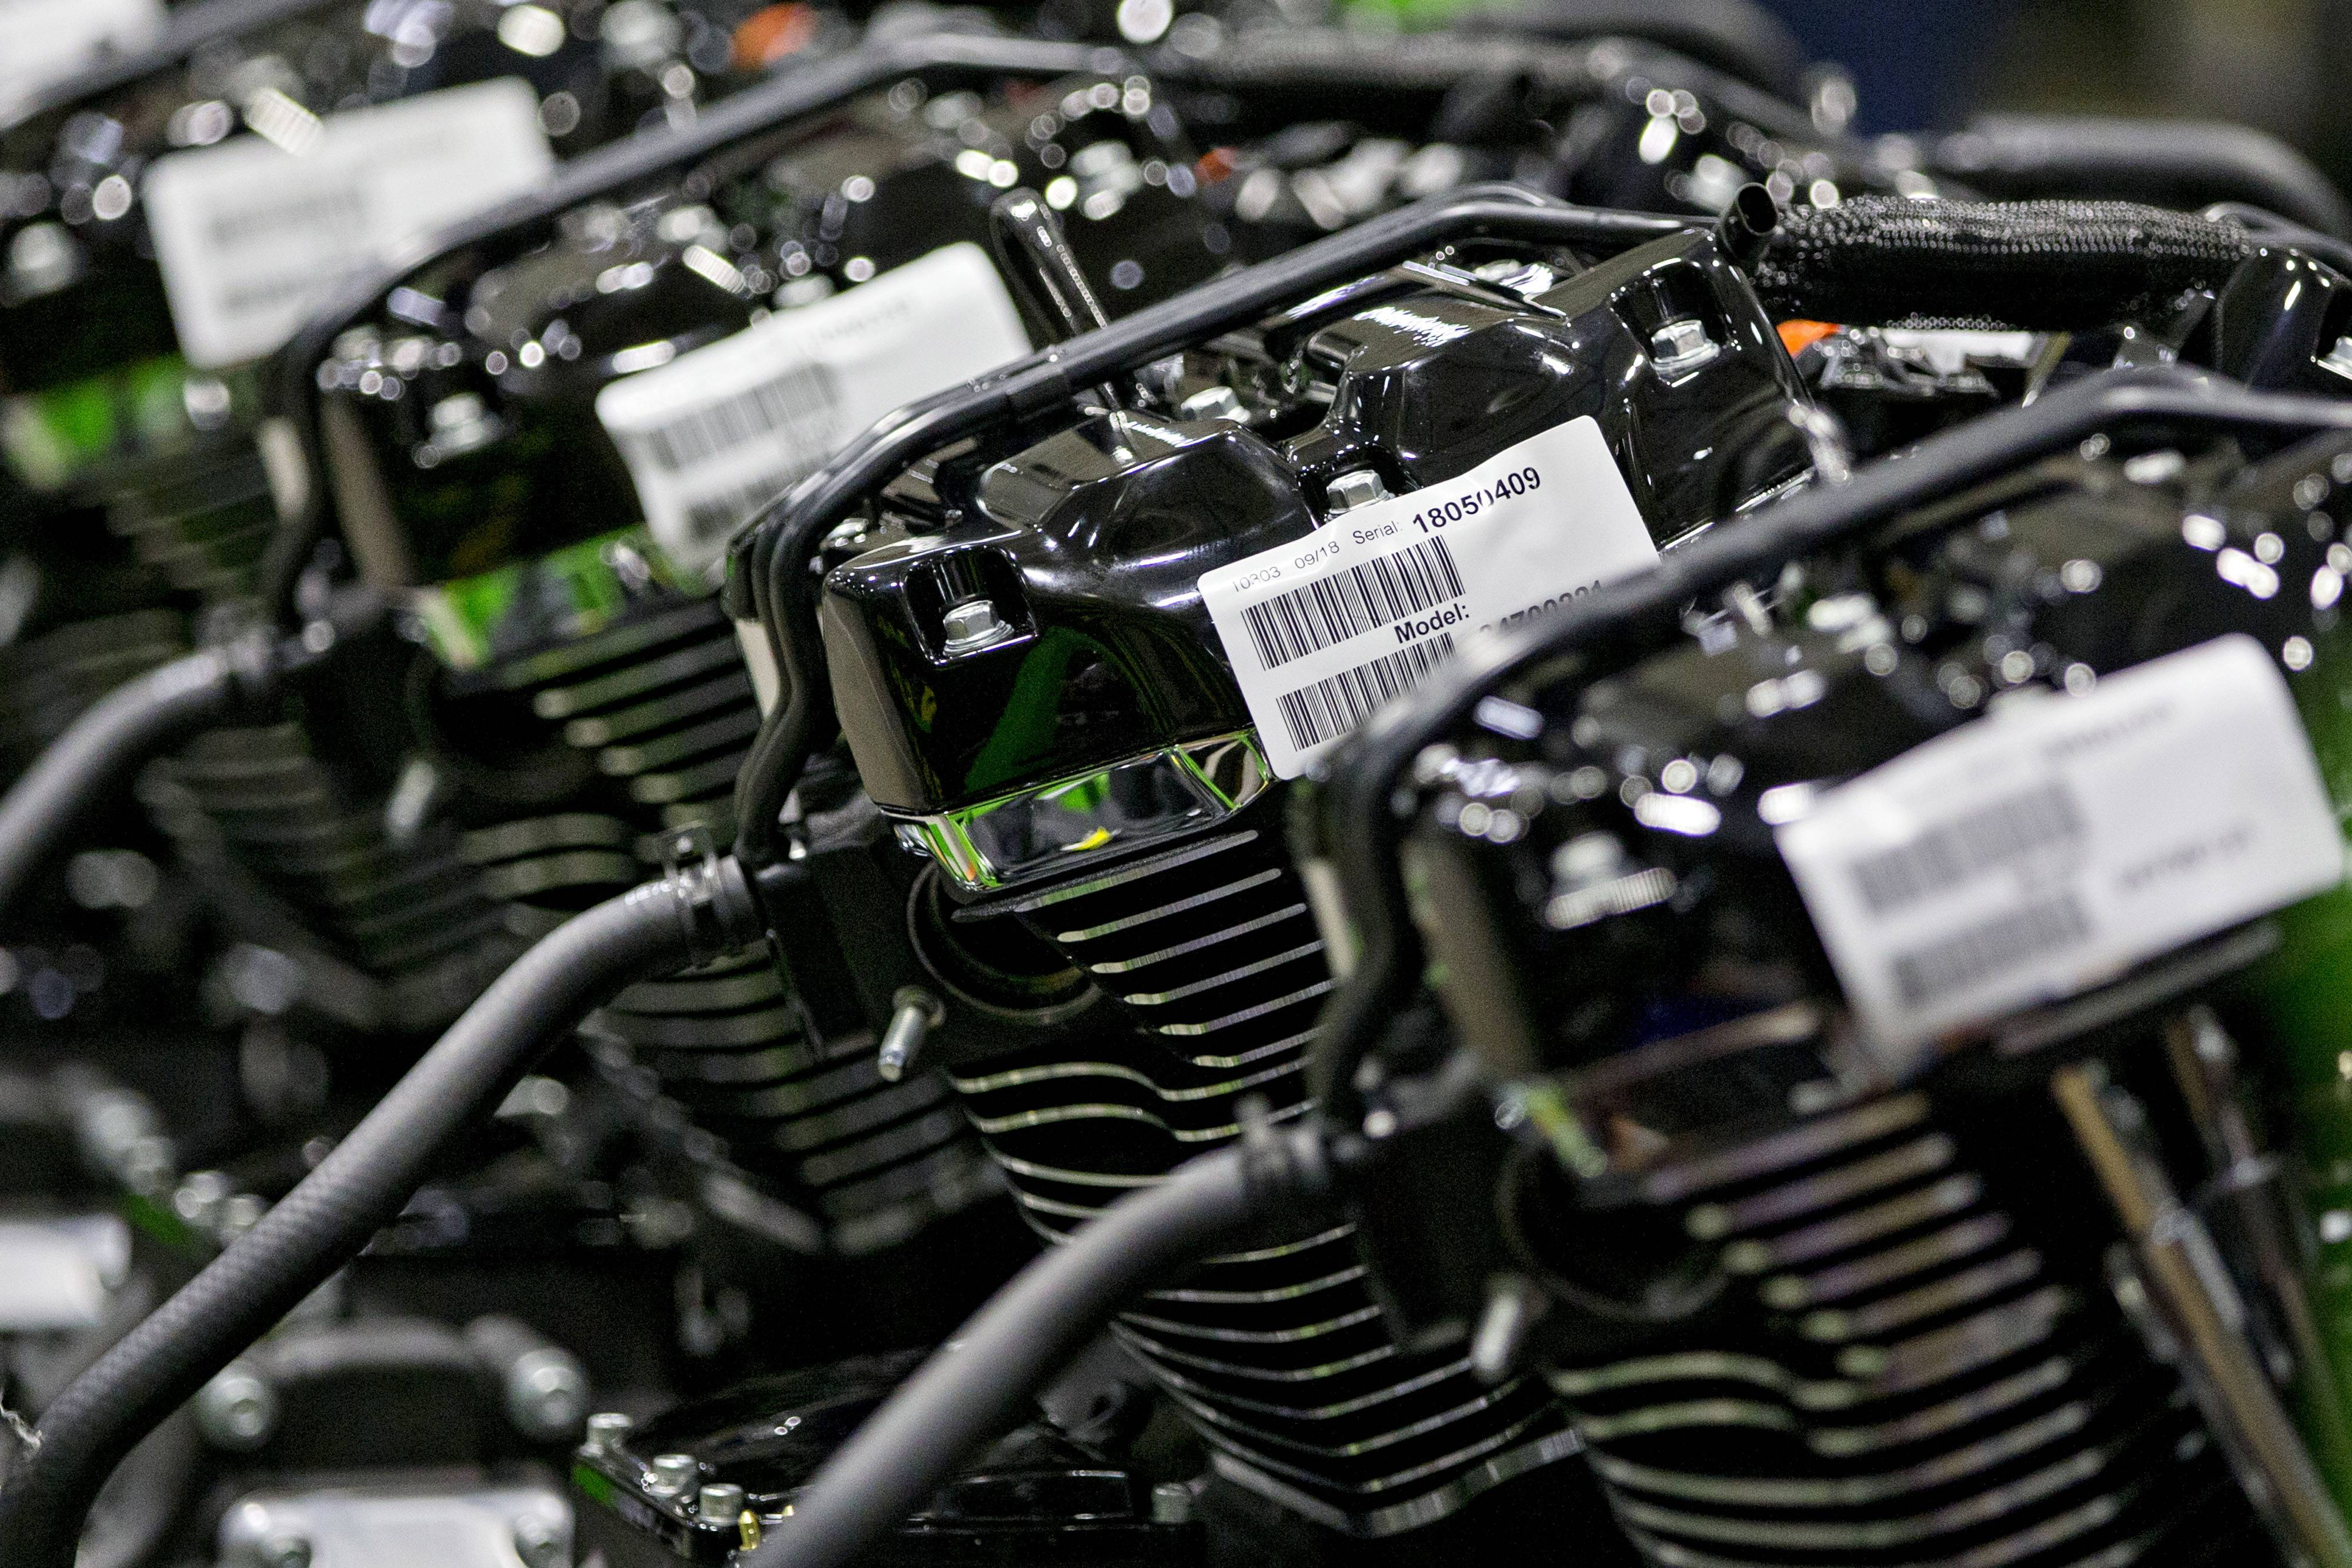 Milwaukee-based Harley-Davidson Inc. will close its factory in Kansas City, Missouri, and consolidate production in York, Pennsylvania, according to a statement Tuesday.